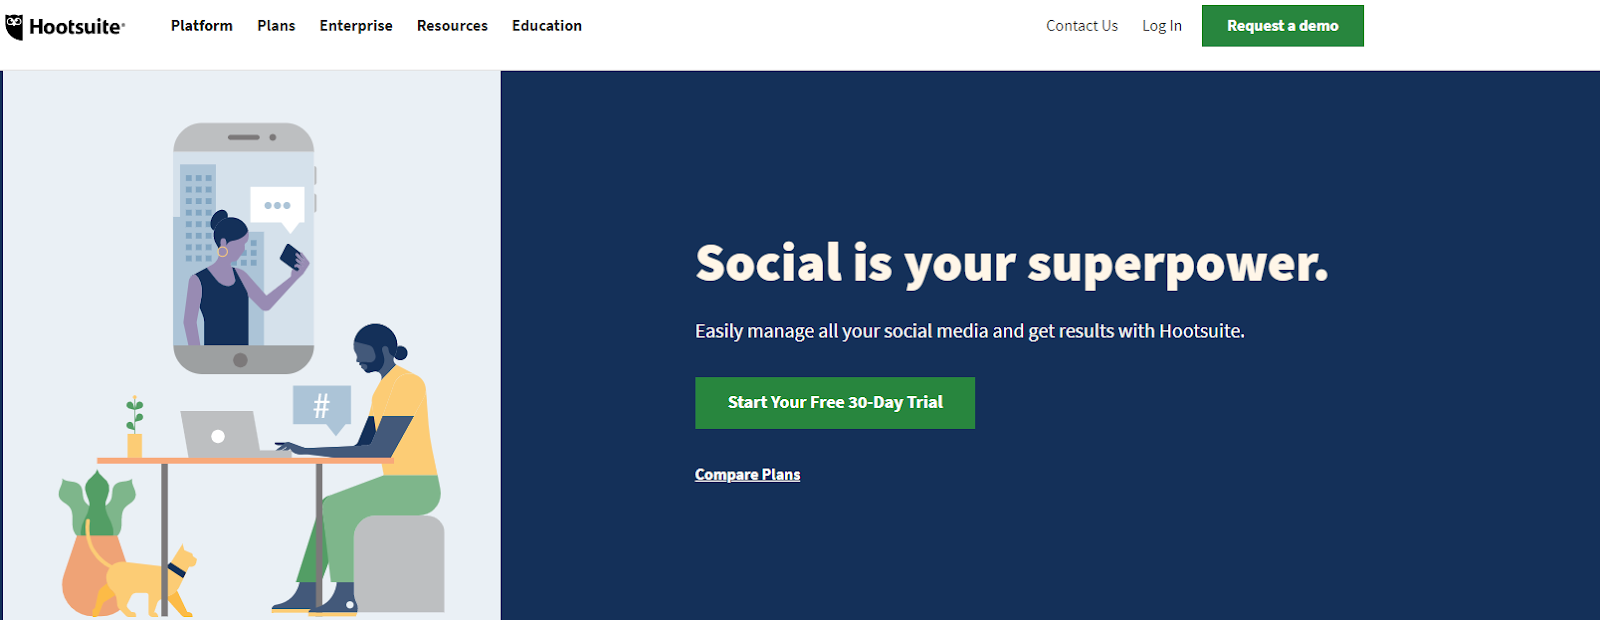 Schedule your social media posts using Hootsuite